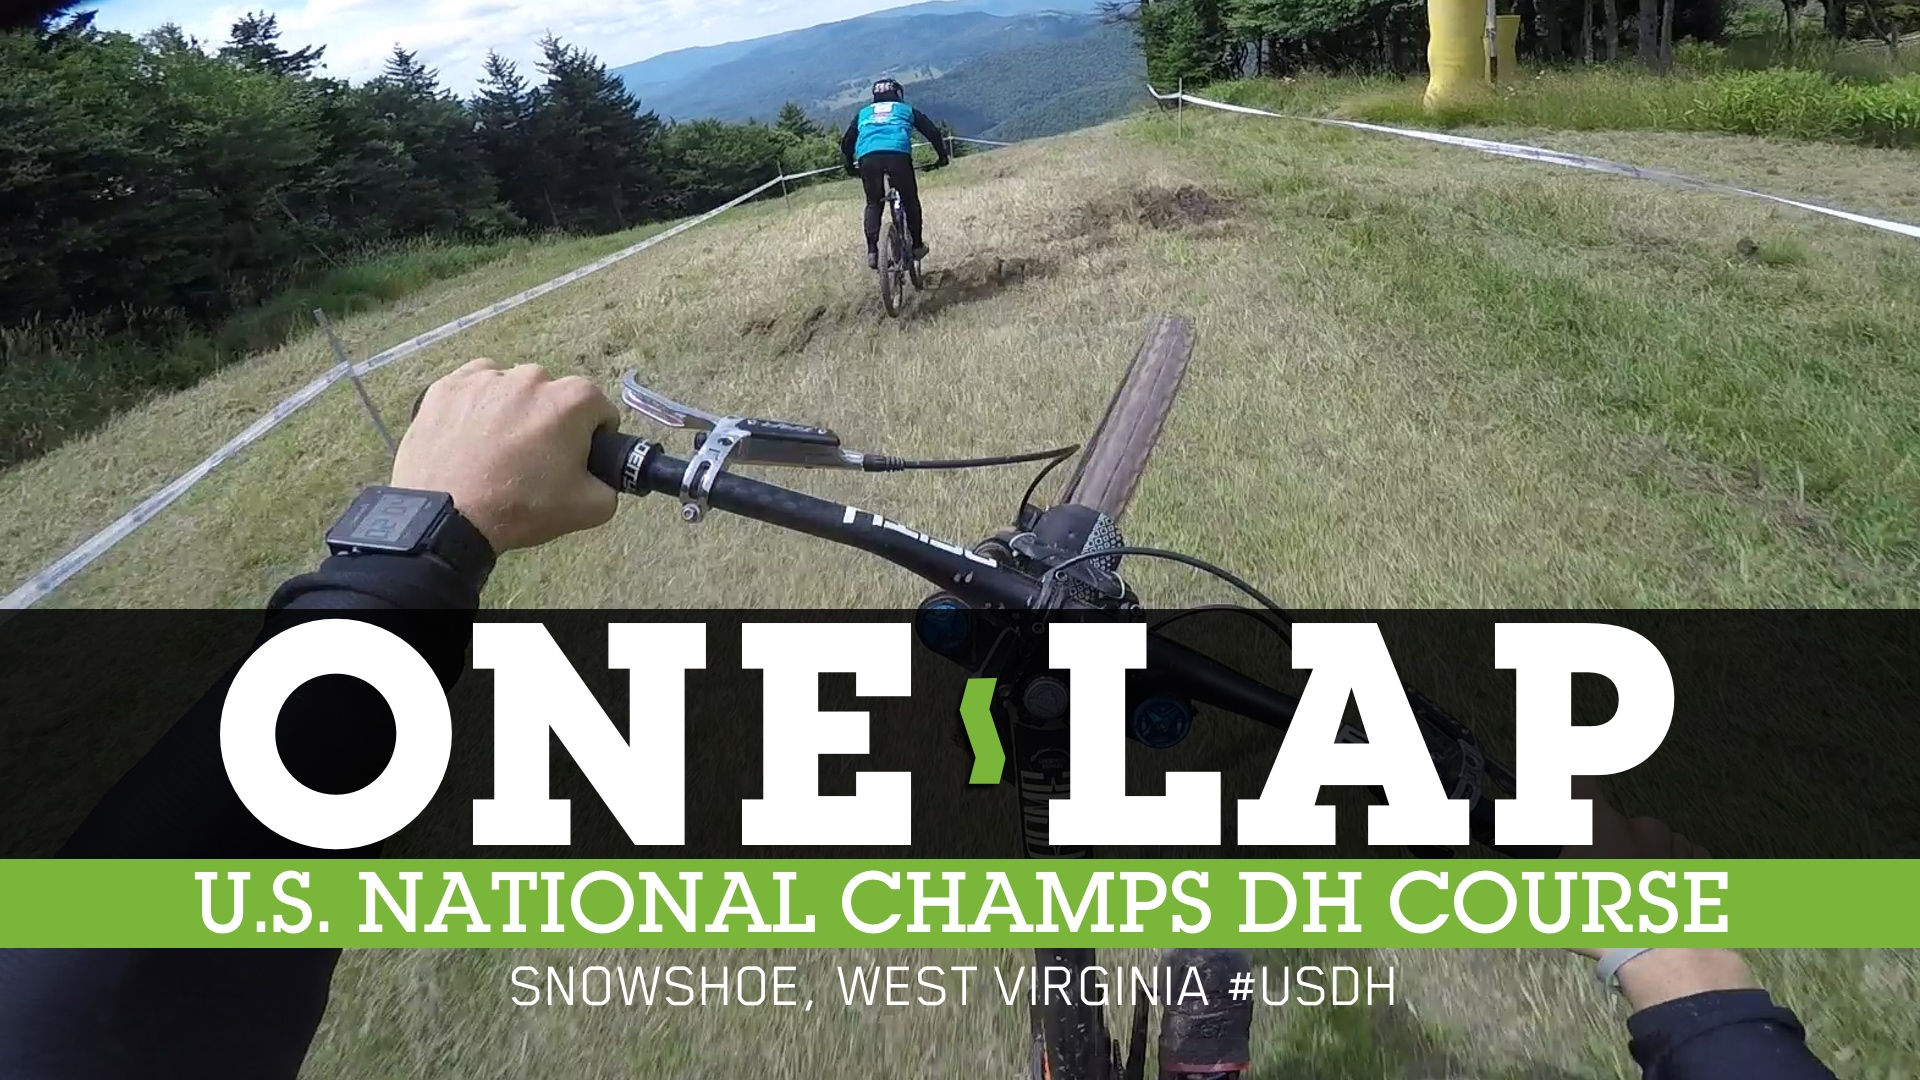 COURSE PREVIEW - U.S. National Champs Downhill